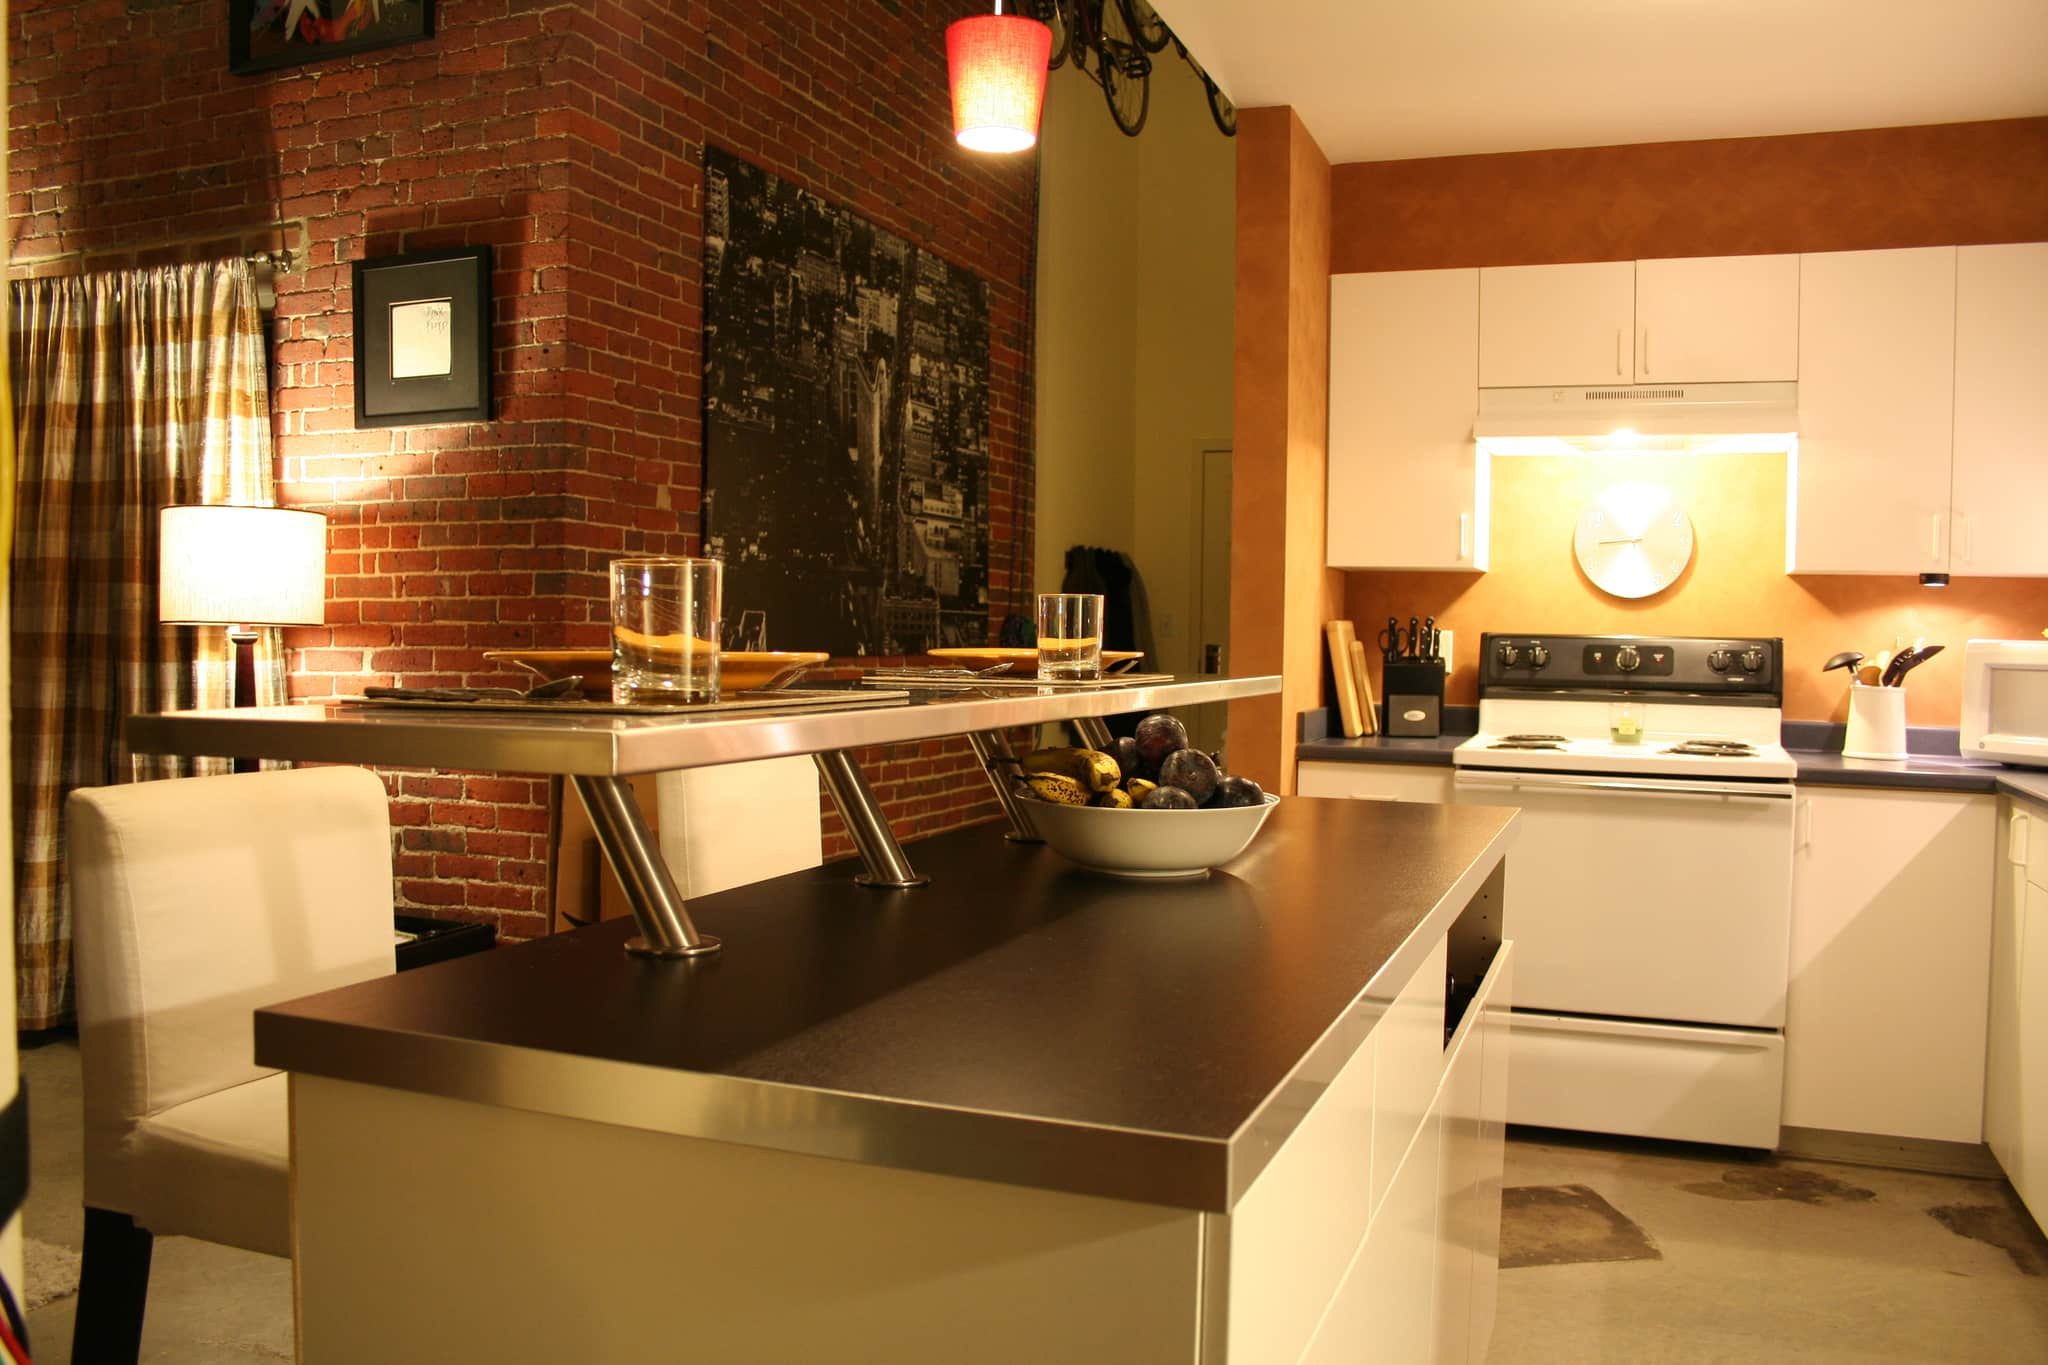 Kate's Creatively Renovated Rental Kitchen: gallery image 5